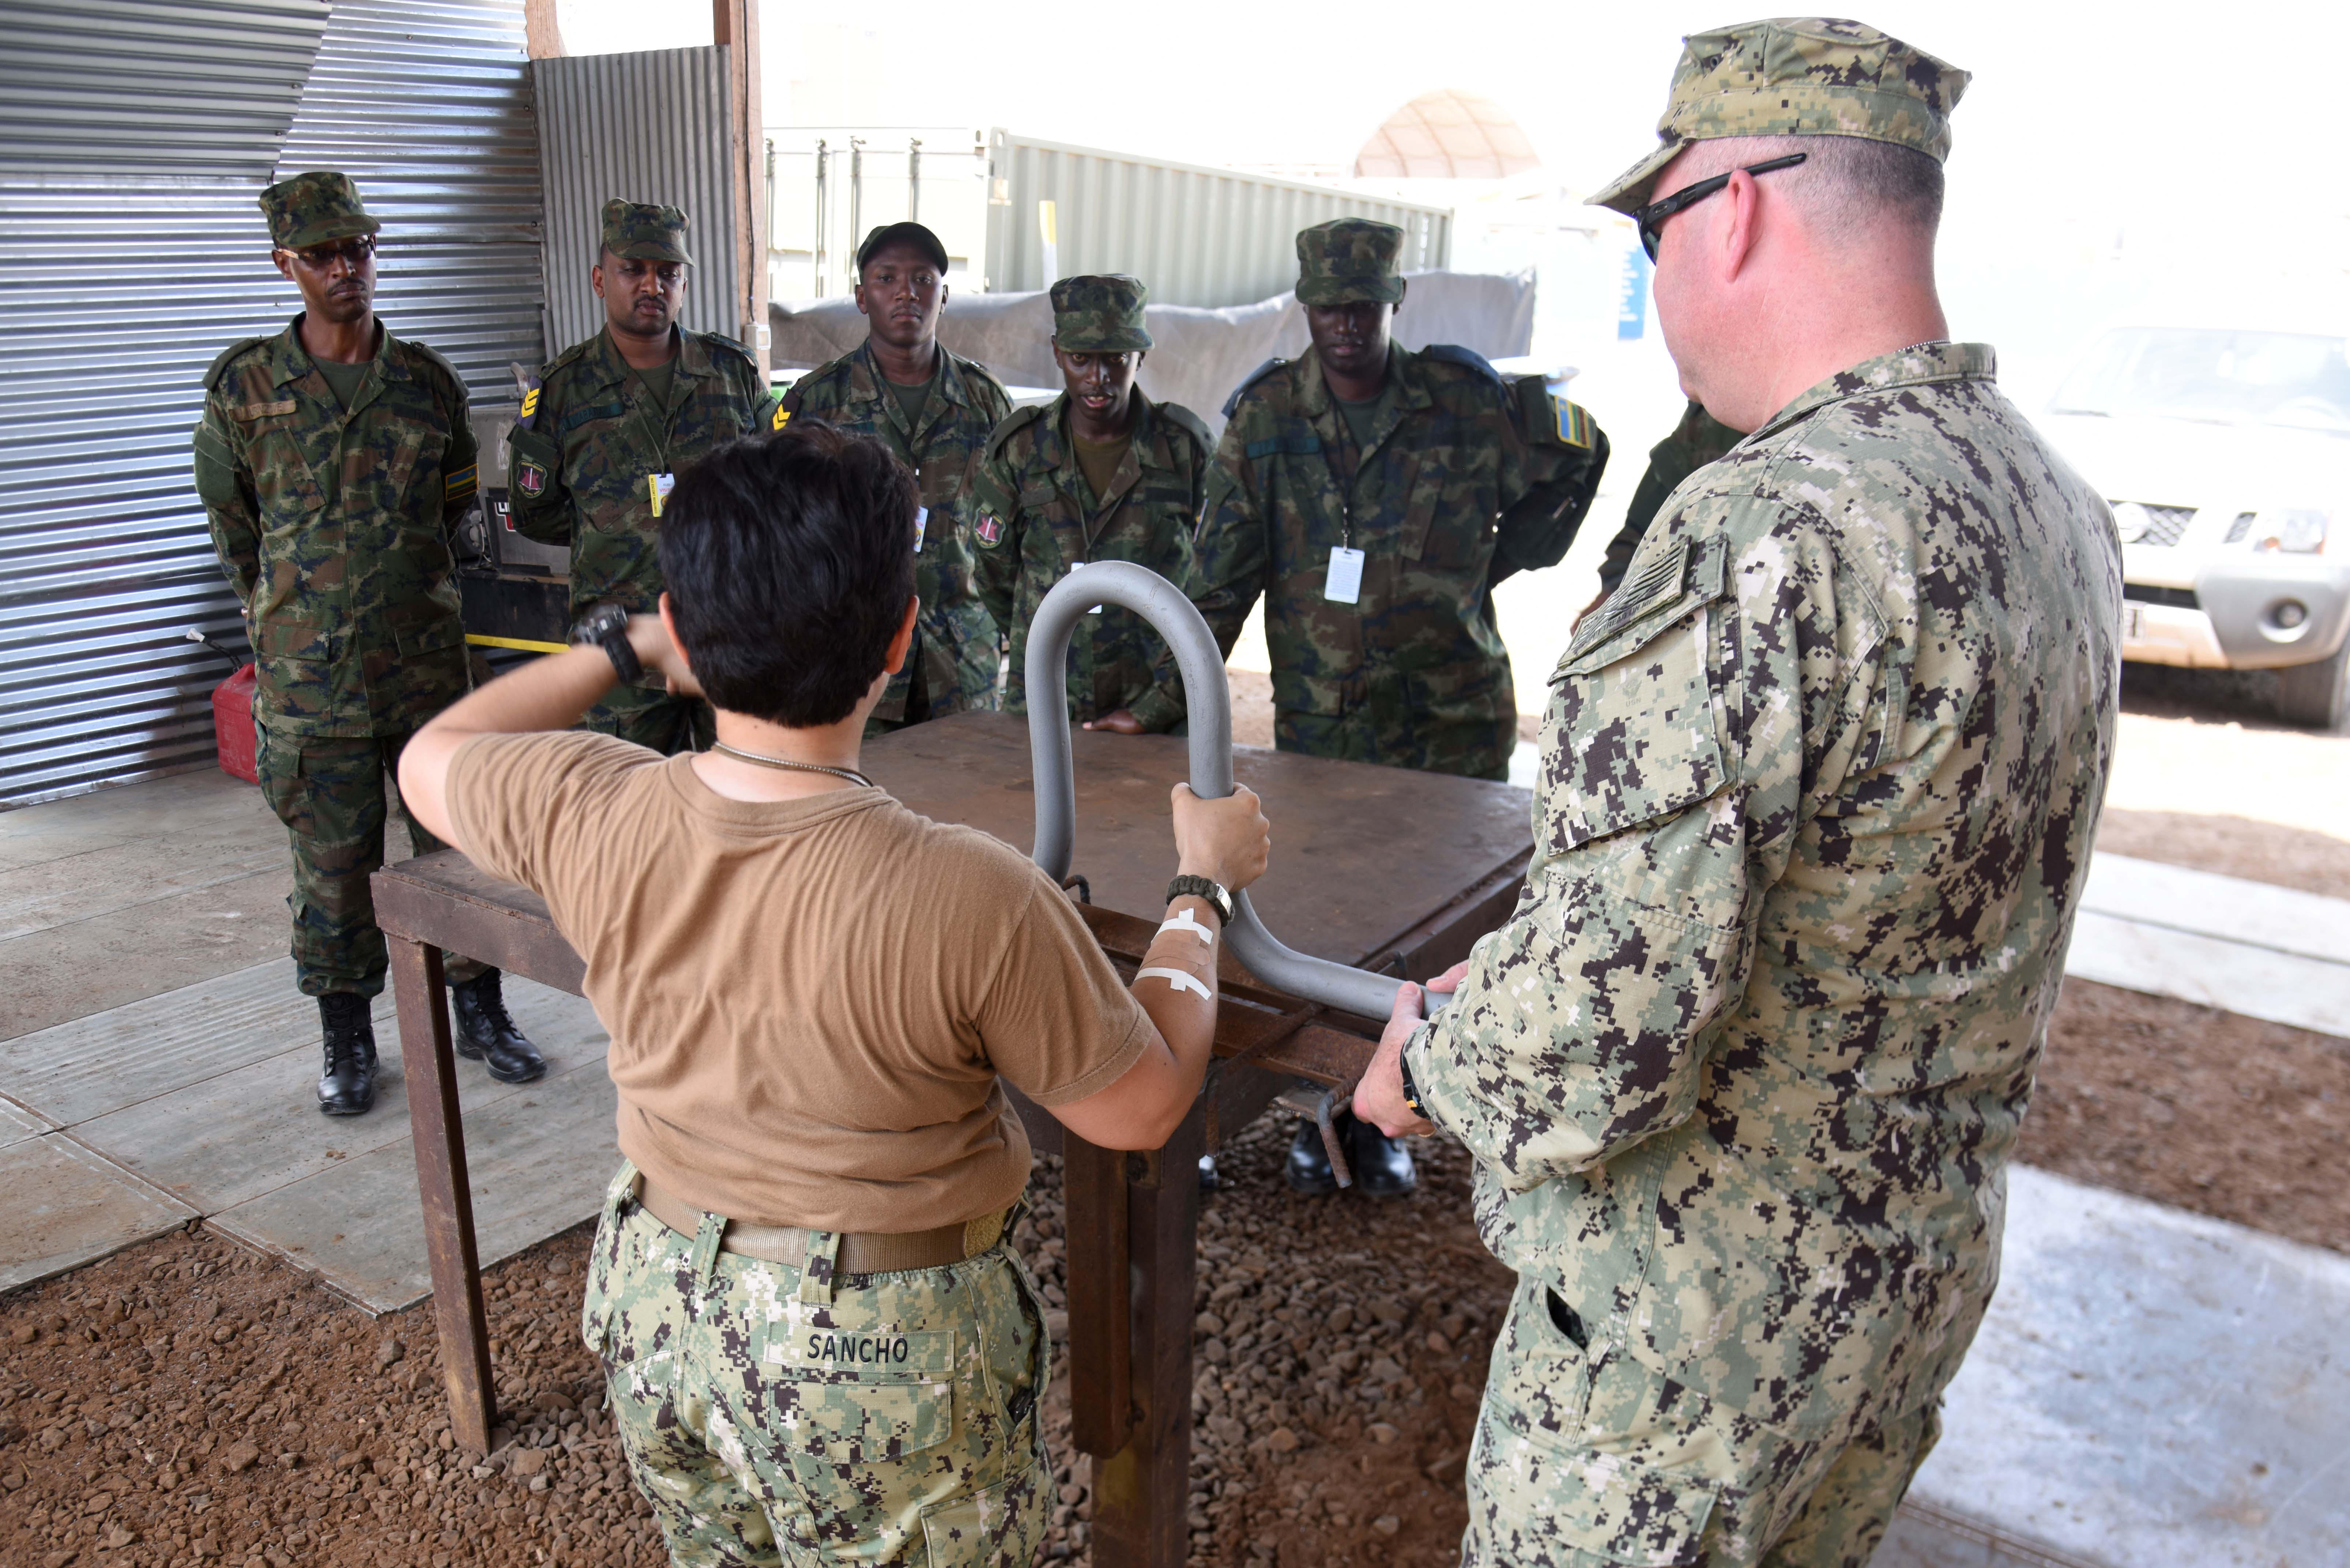 Seabees assigned to Naval Mobile Construction Battalion 22 display concrete support to Rwanda Defence Force engineers during their tour of Camp Lemonnier, Djibouti, Feb. 24, 2016. RDF members viewed U.S. expeditionary construction capabilities to solidify practices shared in prior exchanges with Combined Joint Task Force-Horn of Africa engineers. (U.S. Air Force photo by Staff Sgt. Victoria Sneed)